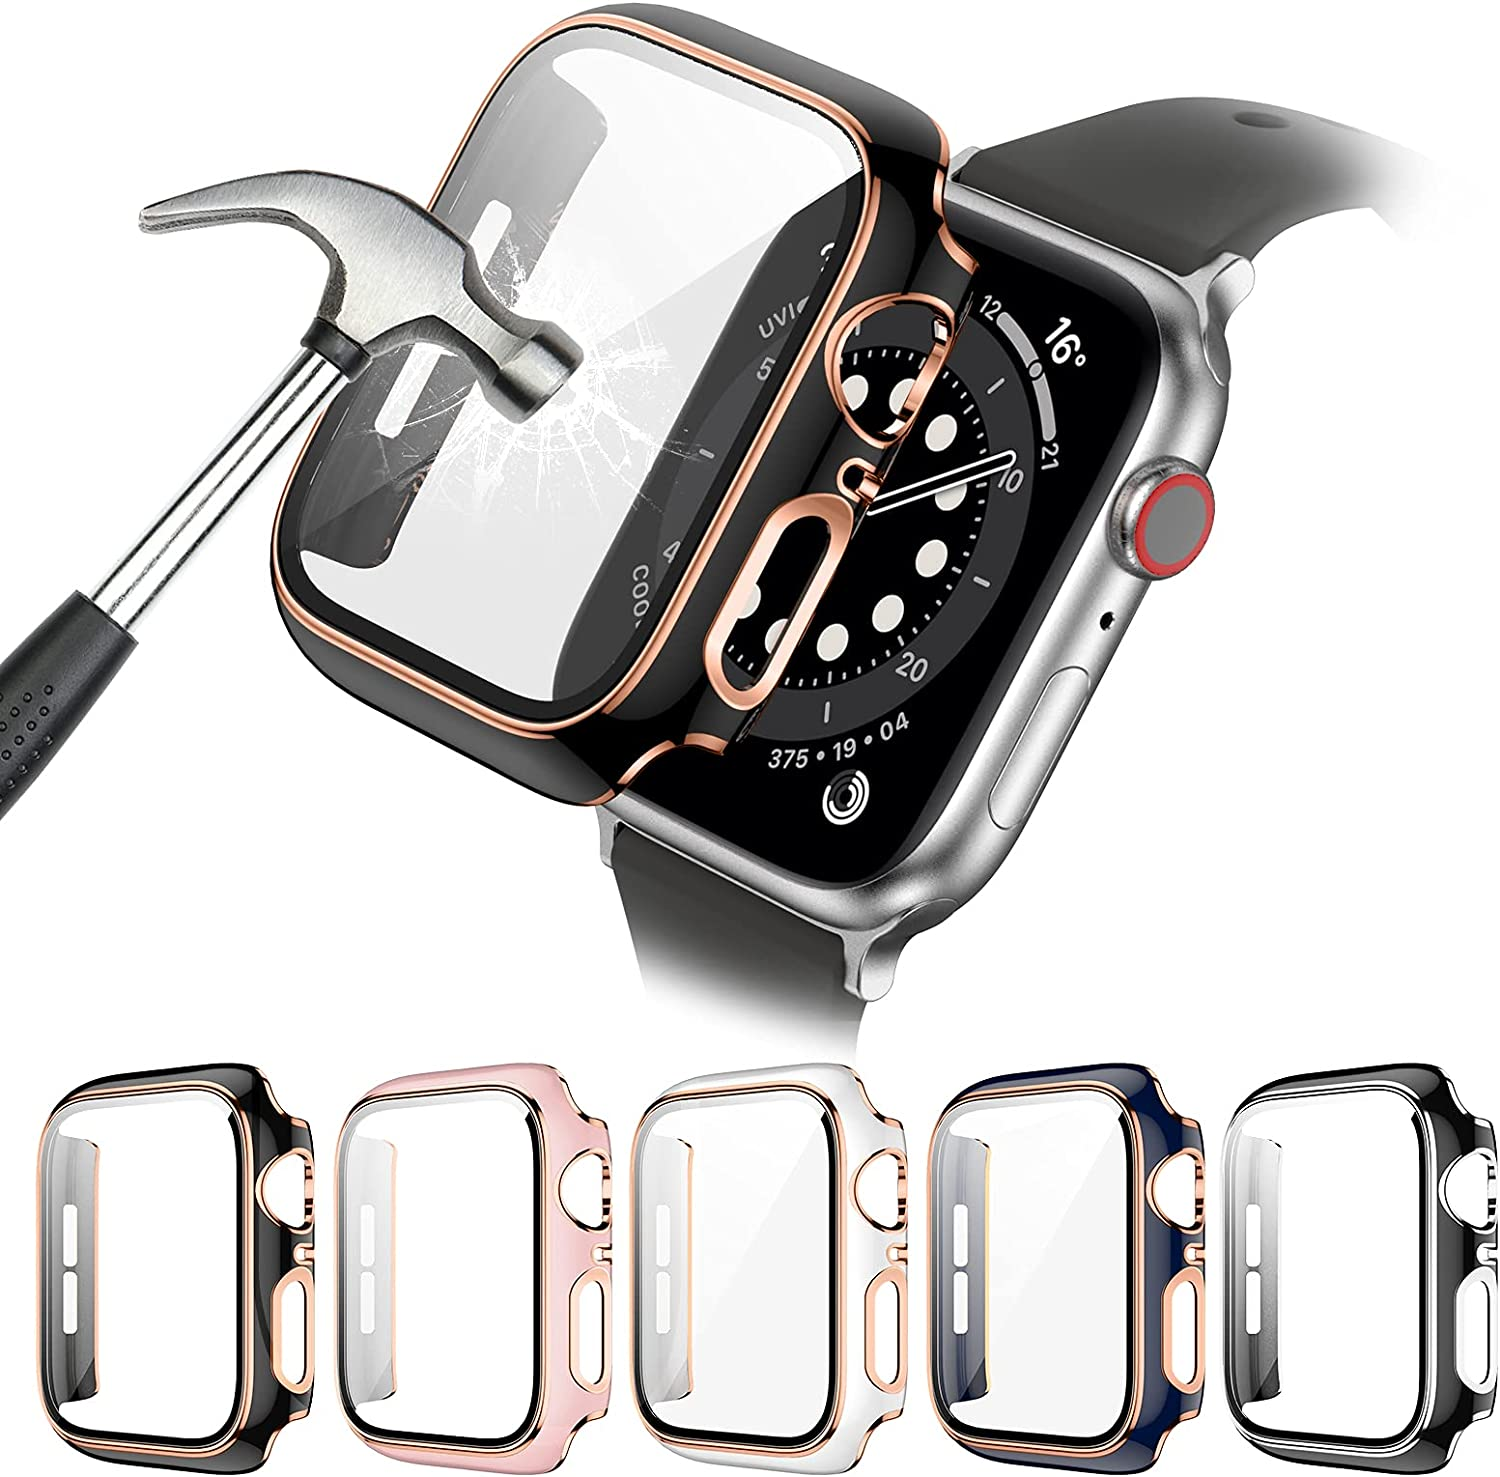 5 Pack Apple Watch Case with Tempered Glass Screen Protector for Apple Watch 38mm Series 3/2/1, Haojavo New Hard PC Ultra-Thin Scratch Resistant Bumper HD Protective Cover for iWatch Accessories